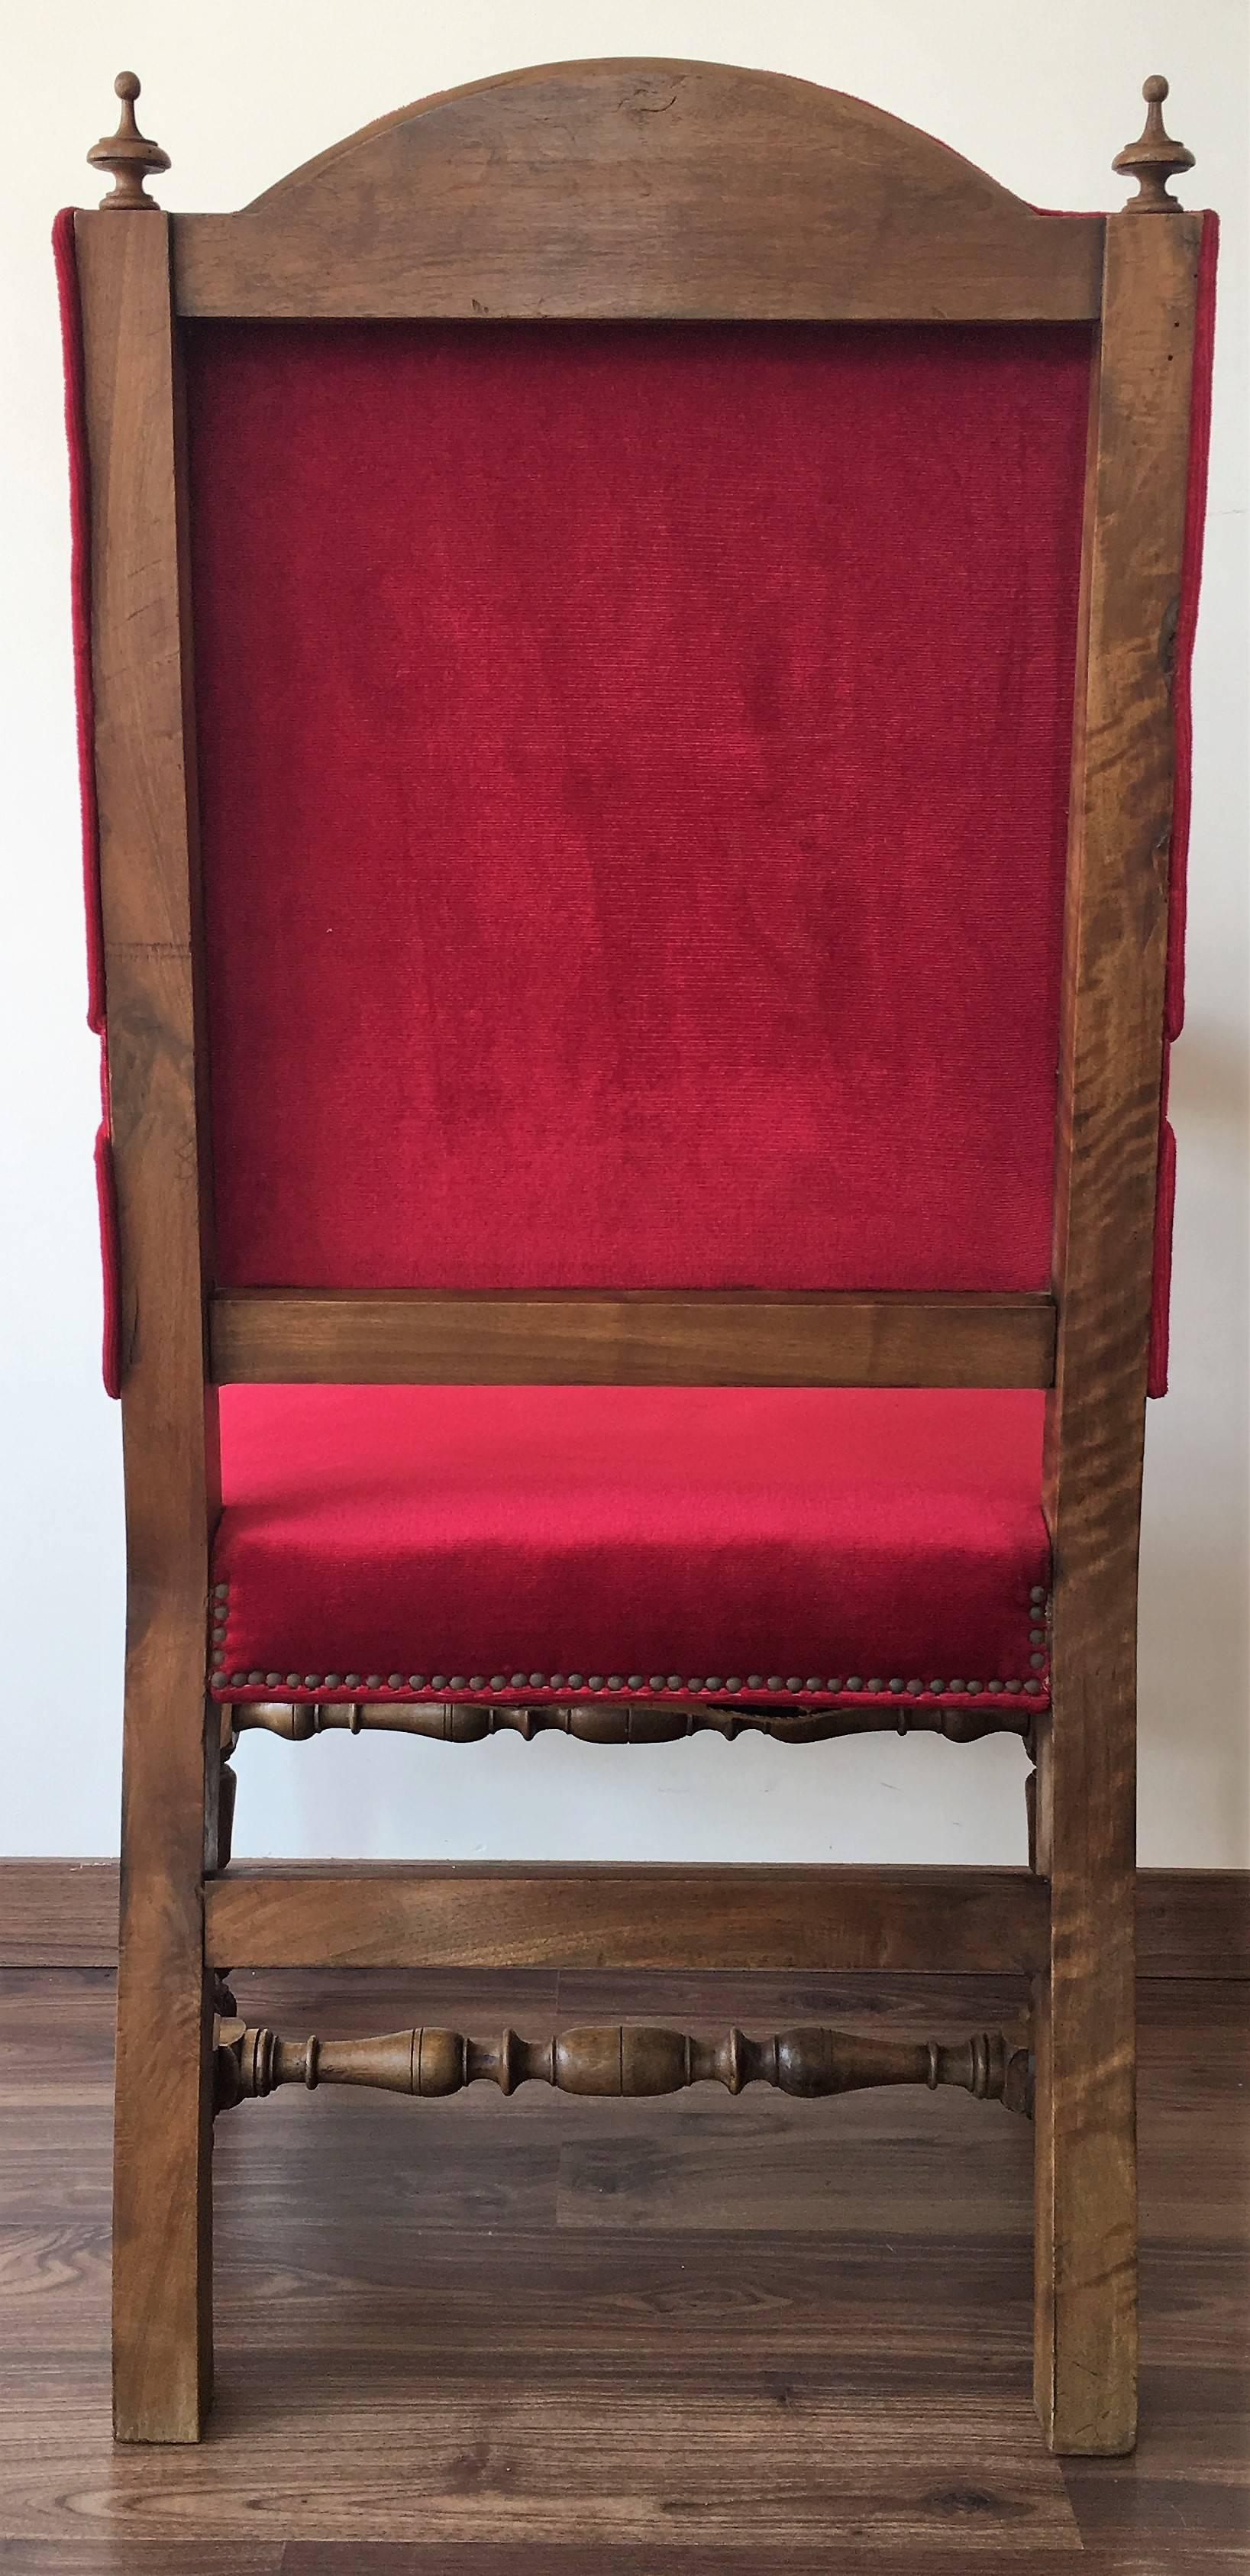 Fauteuils Louis 13 19th Century Louis Xiii Style Fauteuils Throne Armchair In Red Velvet